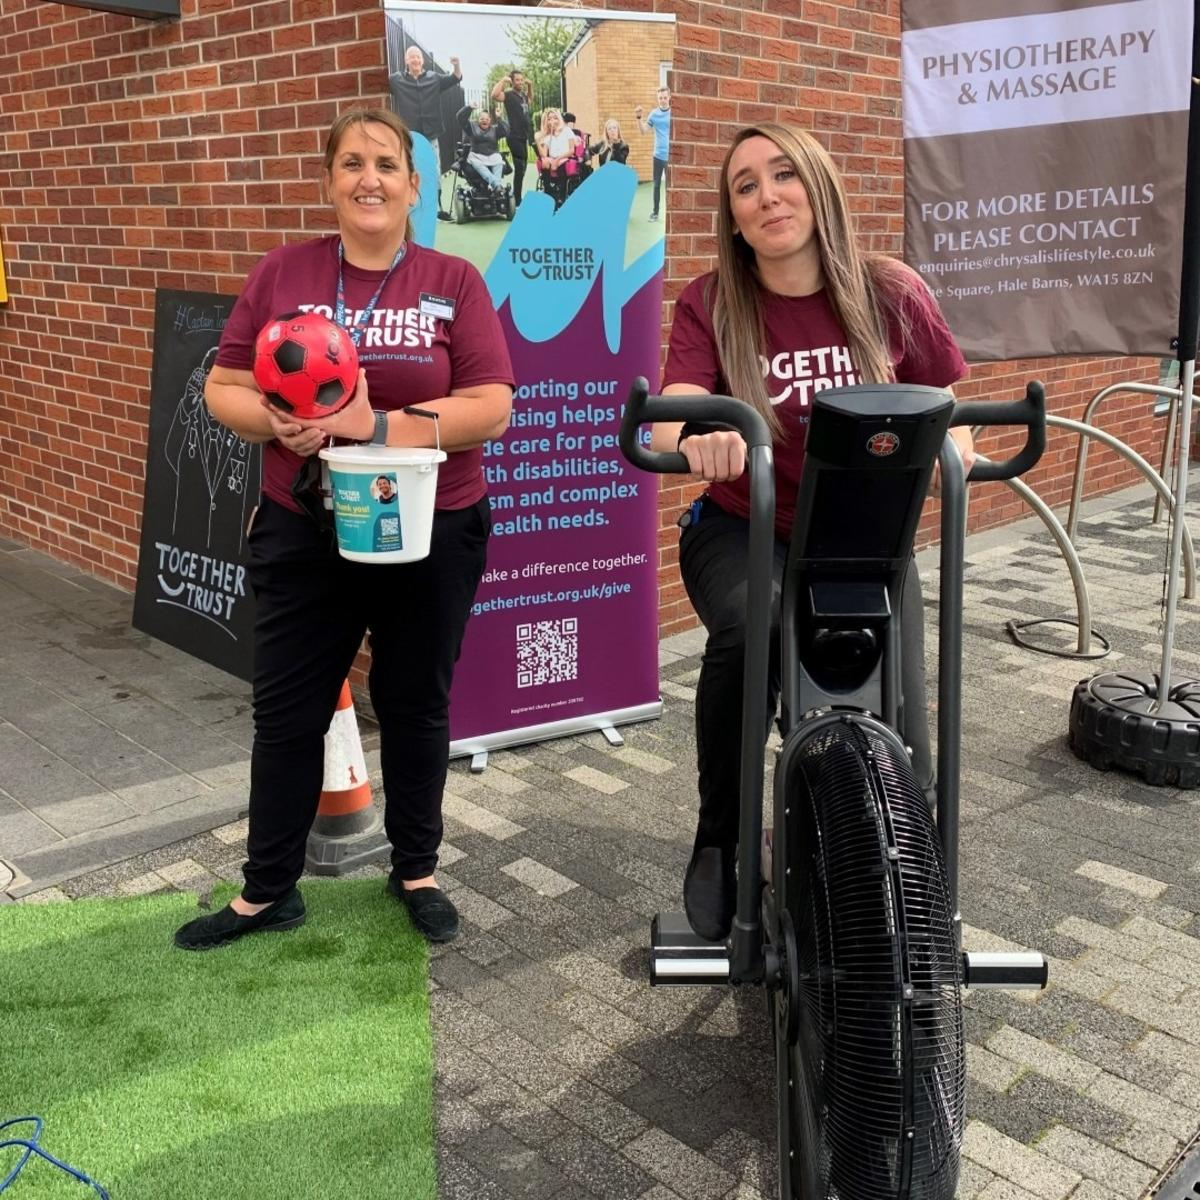 A team member from Booths holding a collection bucket next to another sat on an exercise bike